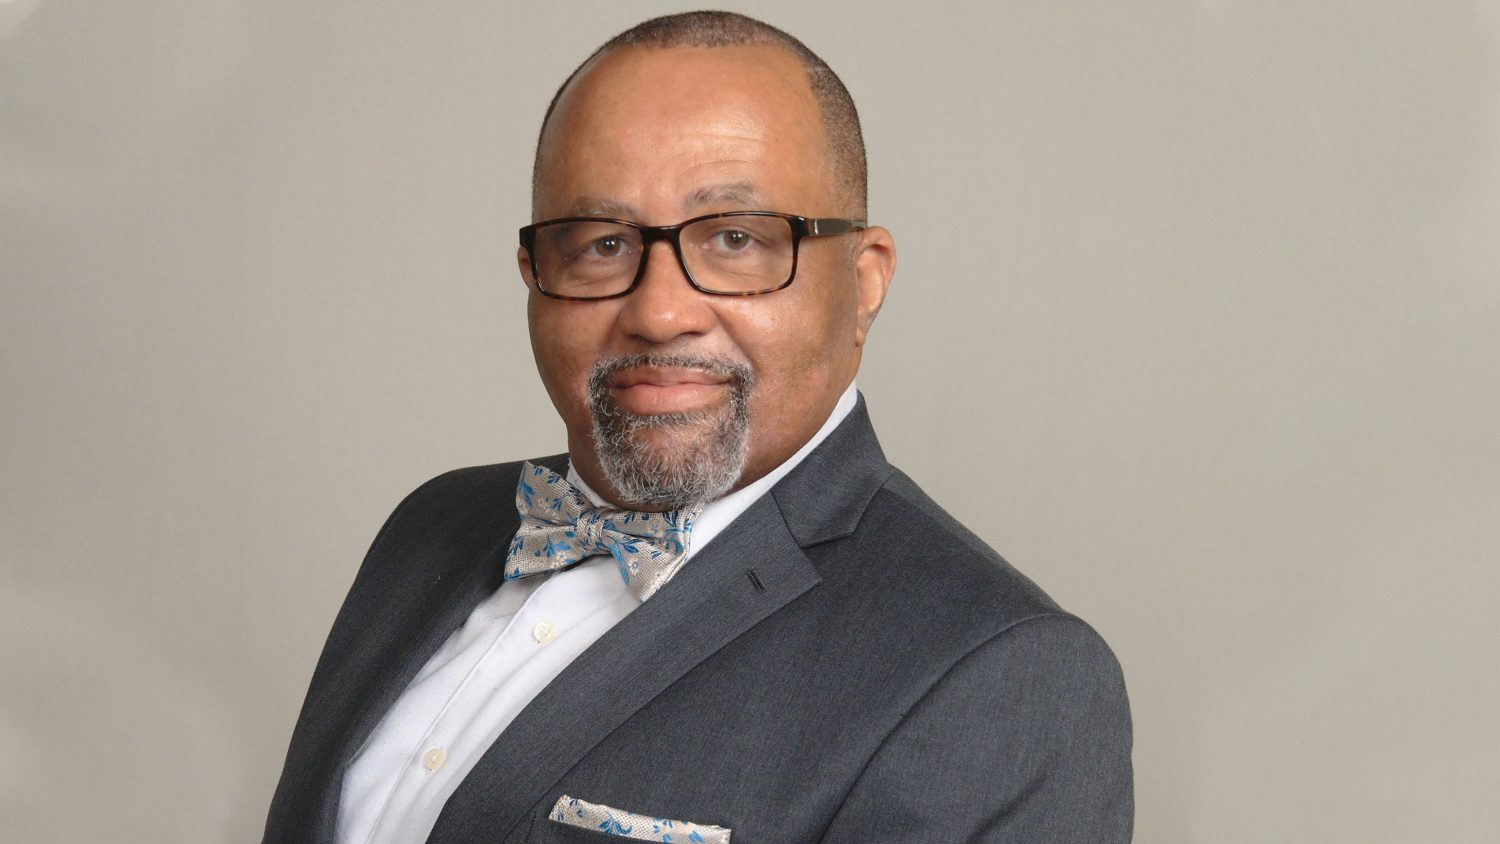 Robert Horne won the National Board of Certified Counselors' first Bridging the Gap Award for Lifetime Leadership